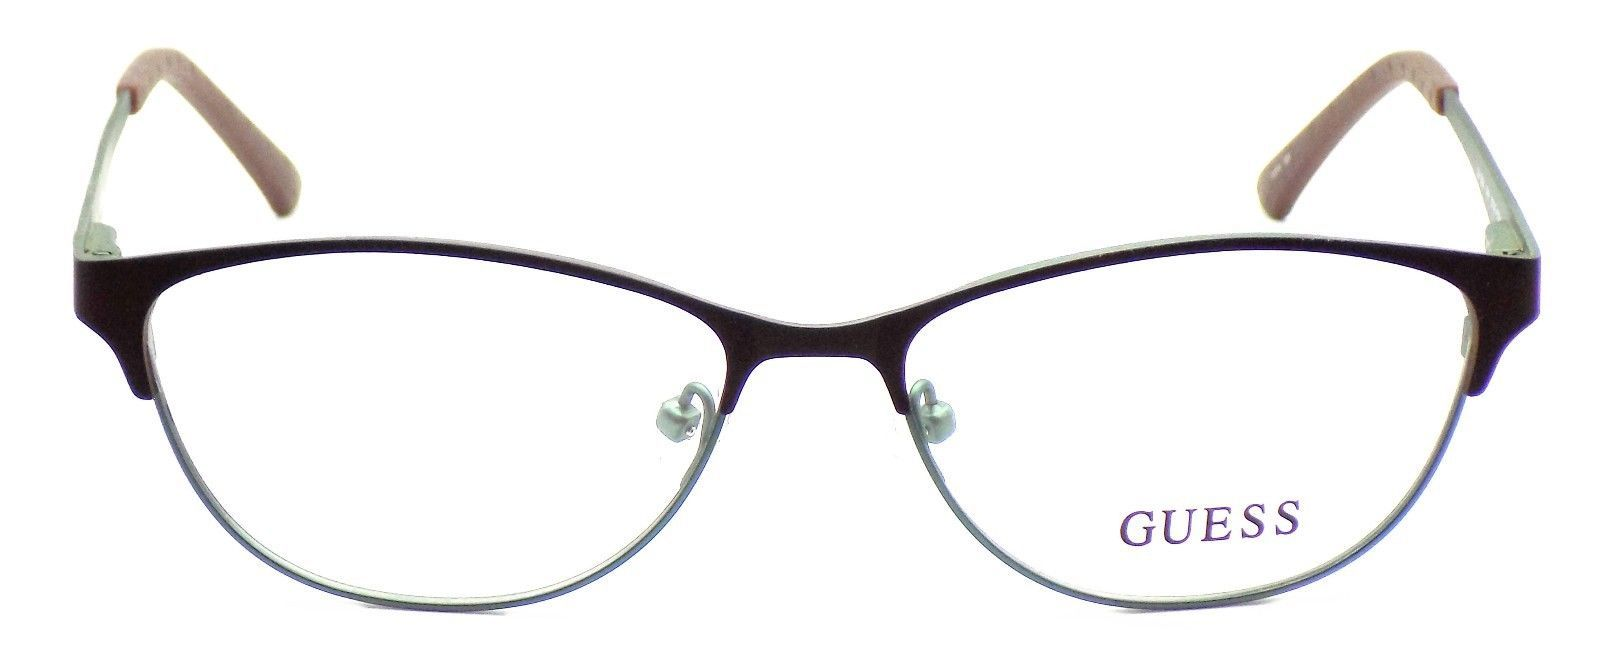 GUESS GU2504 049 Women's Eyeglasses Frames 53-15-135 Satin Brown + CASE image 2